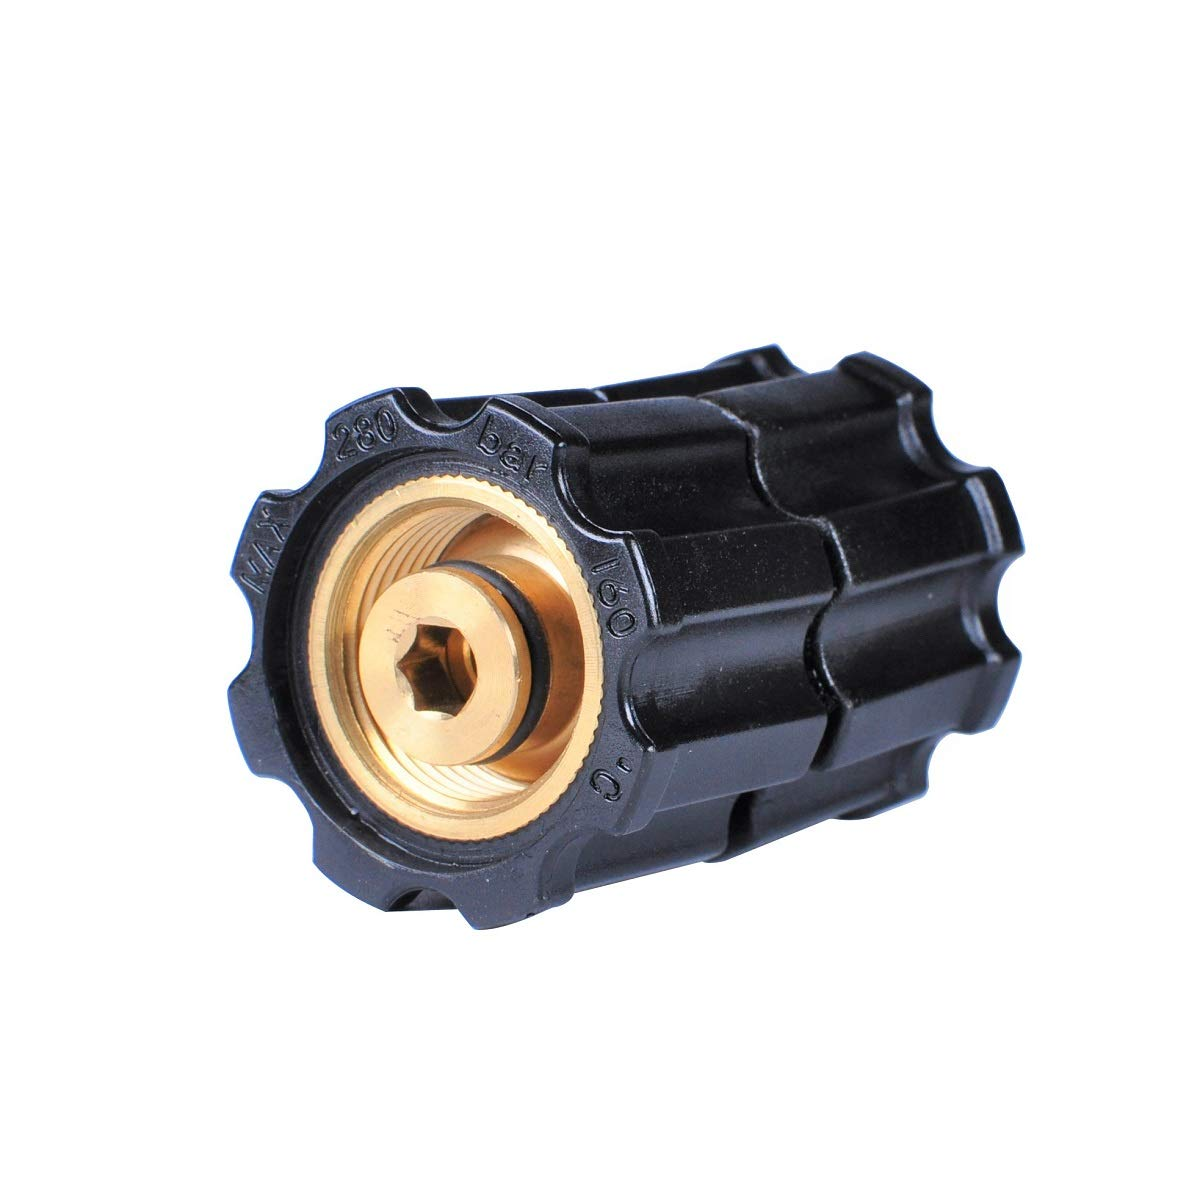 YAMATIC Pressure Washer Hoses Connection Stabilizer Adapter, M22-14mm Female x M22-14mm Female Fitting Up to 5000 PSI by YAMATIC